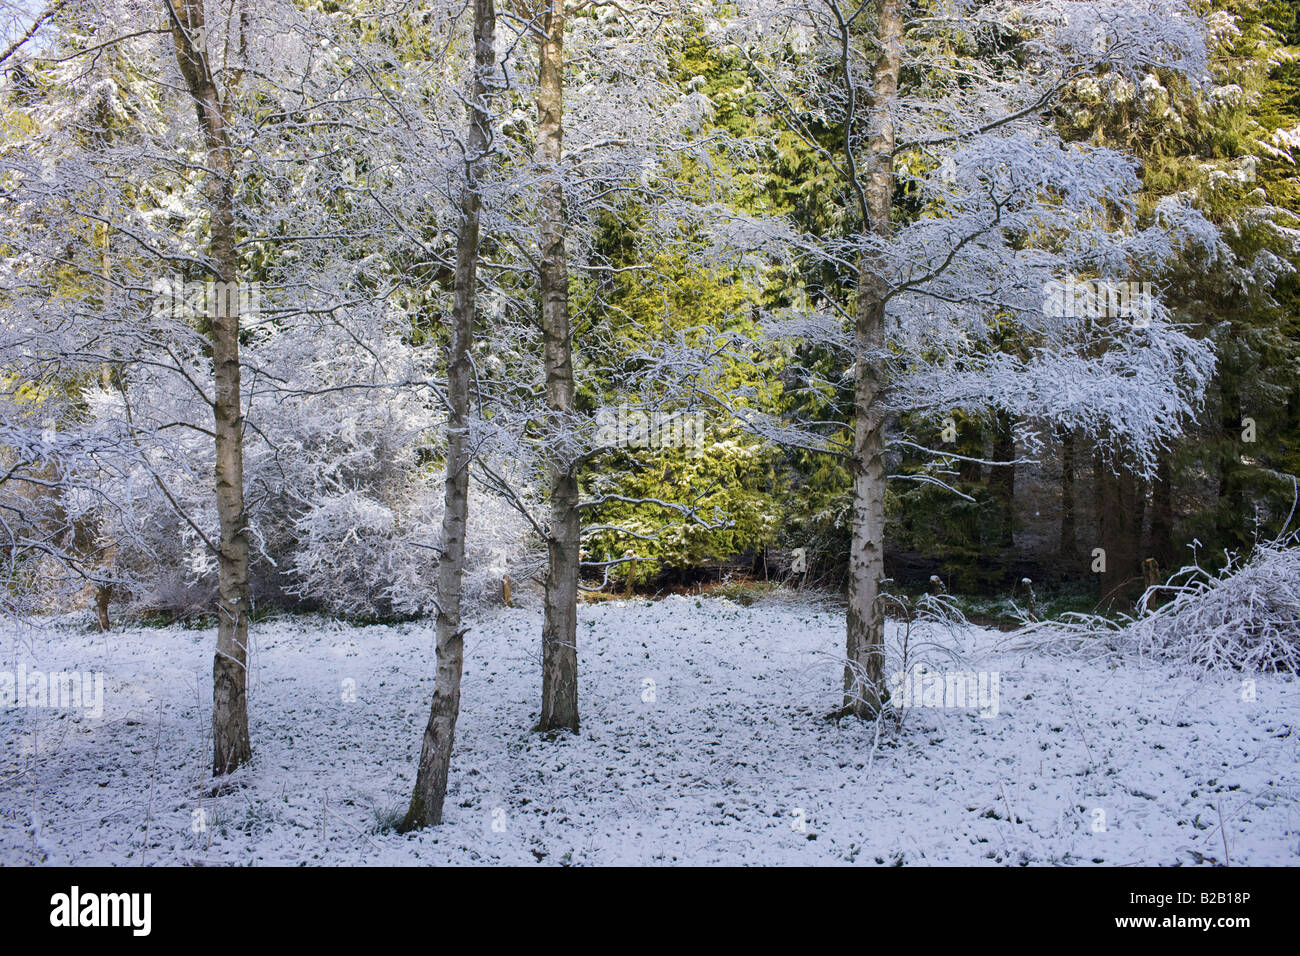 Snow covered Silver Birch trees at Swinbrook in Oxfordshire England United Kingdom - Stock Image